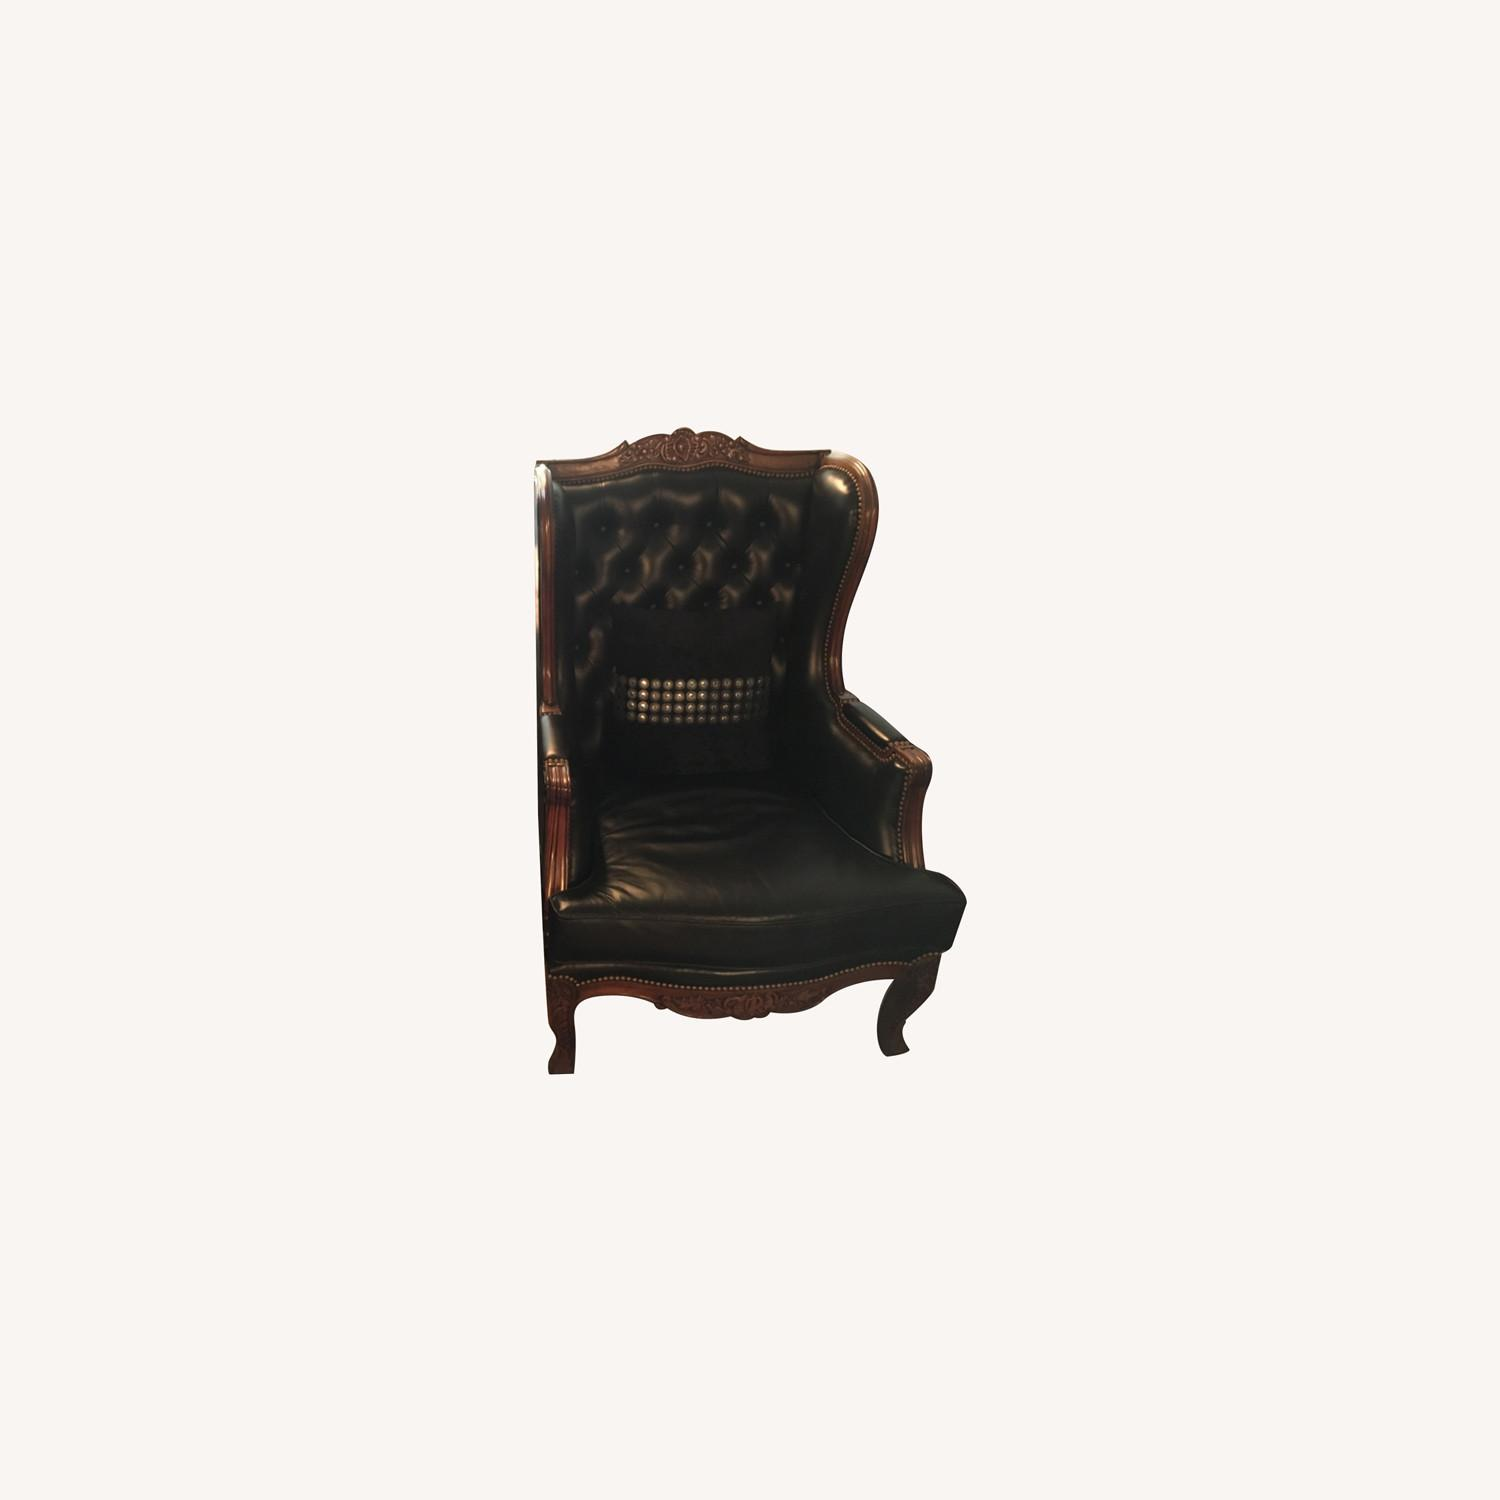 Classic Leather Wingback Chair Set - image-0